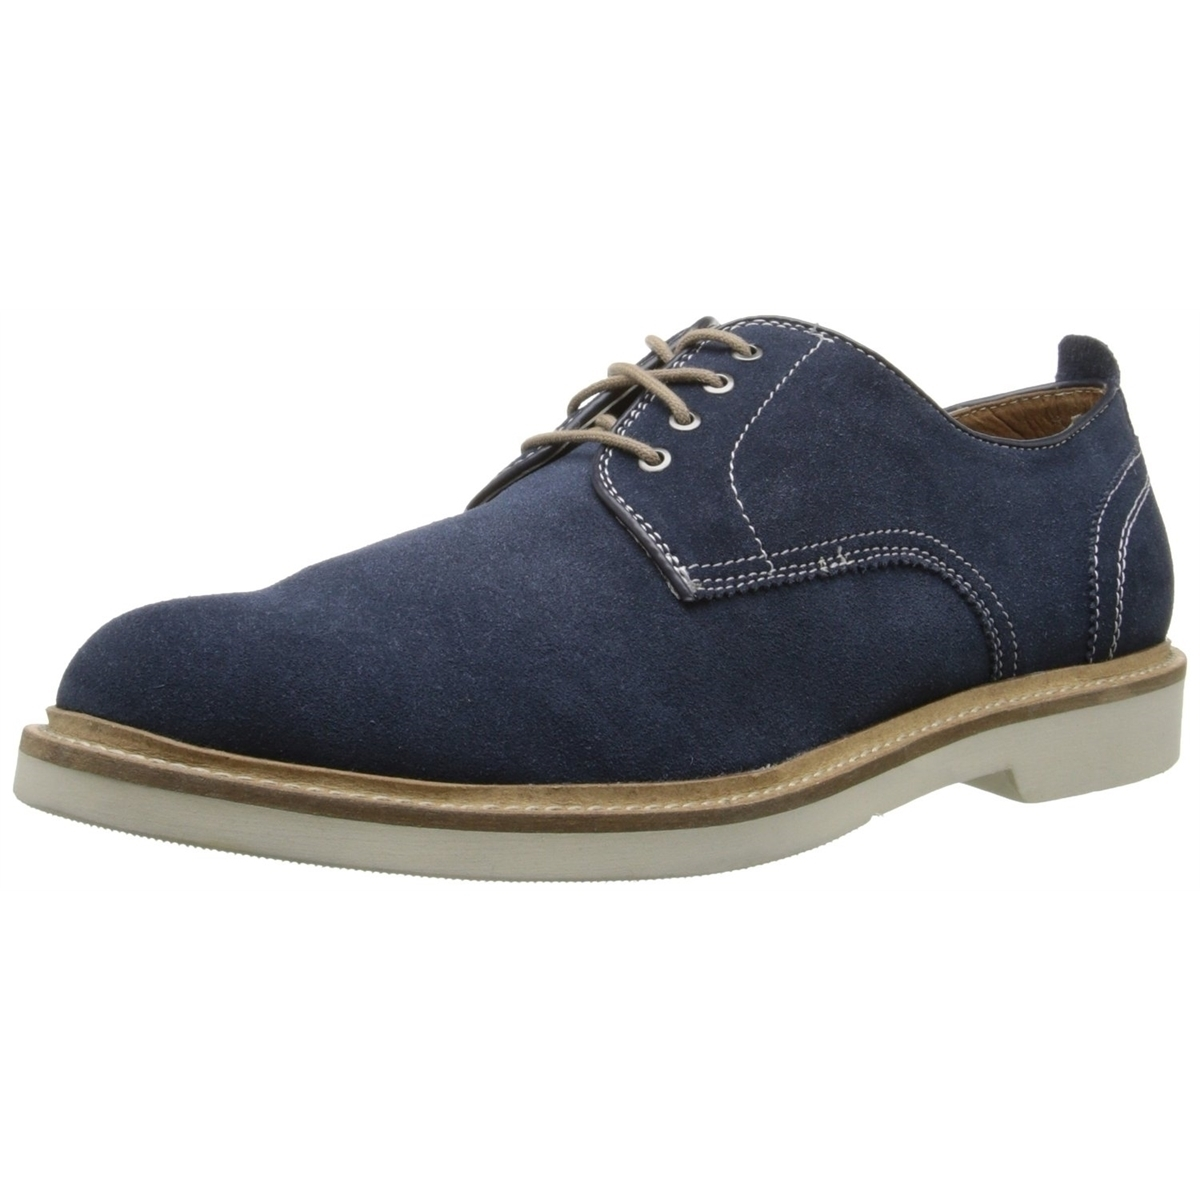 Florsheim Men Bucktown Plain Oxford Shoes by Florsheim